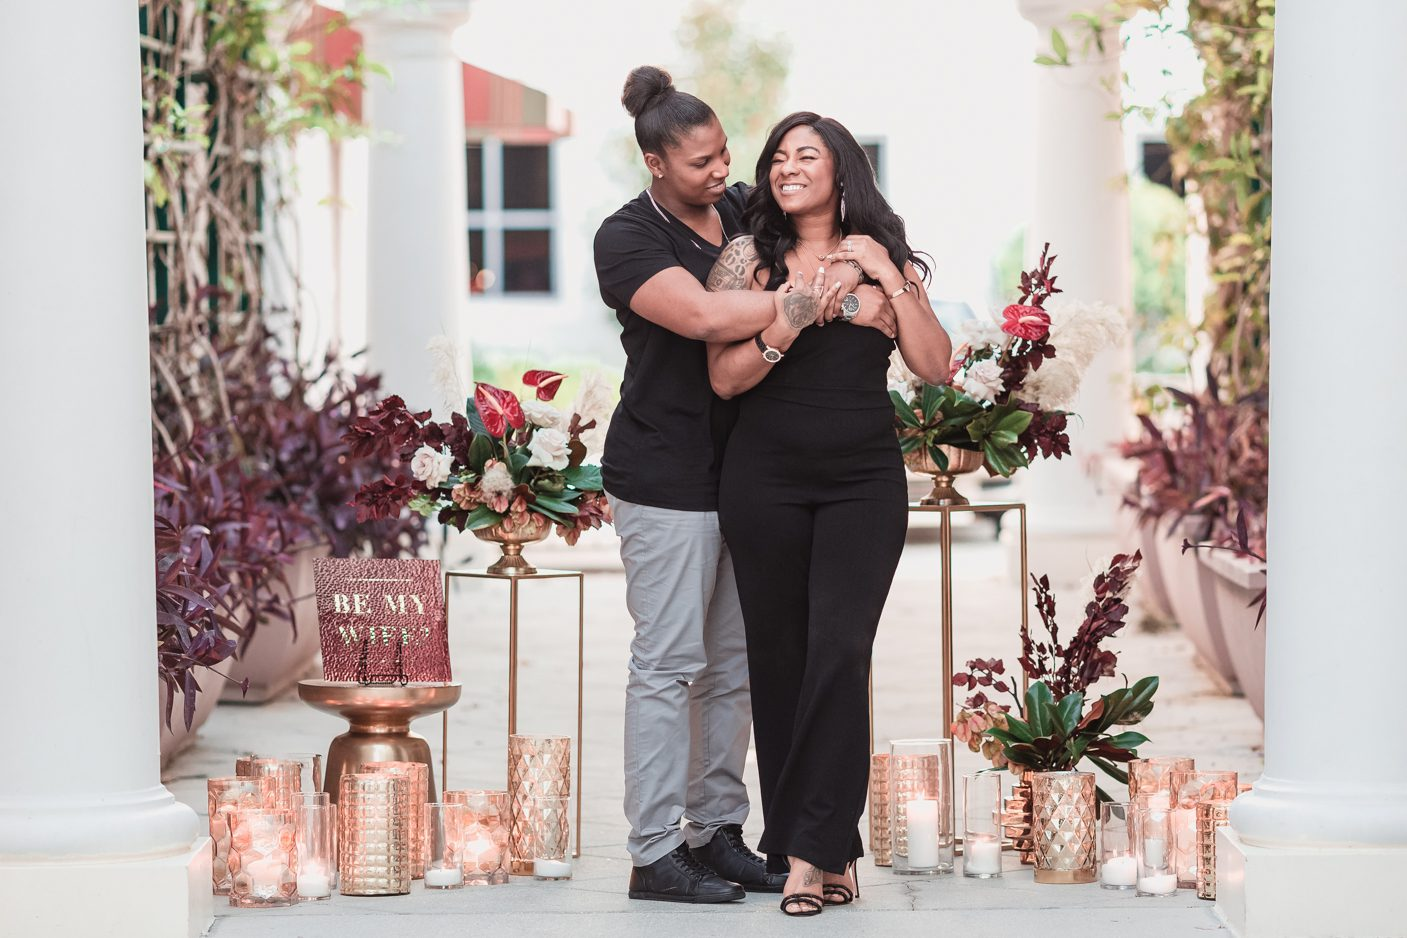 Lesbian surprise proposal in downtown Orlando captured by top LGBT photographer